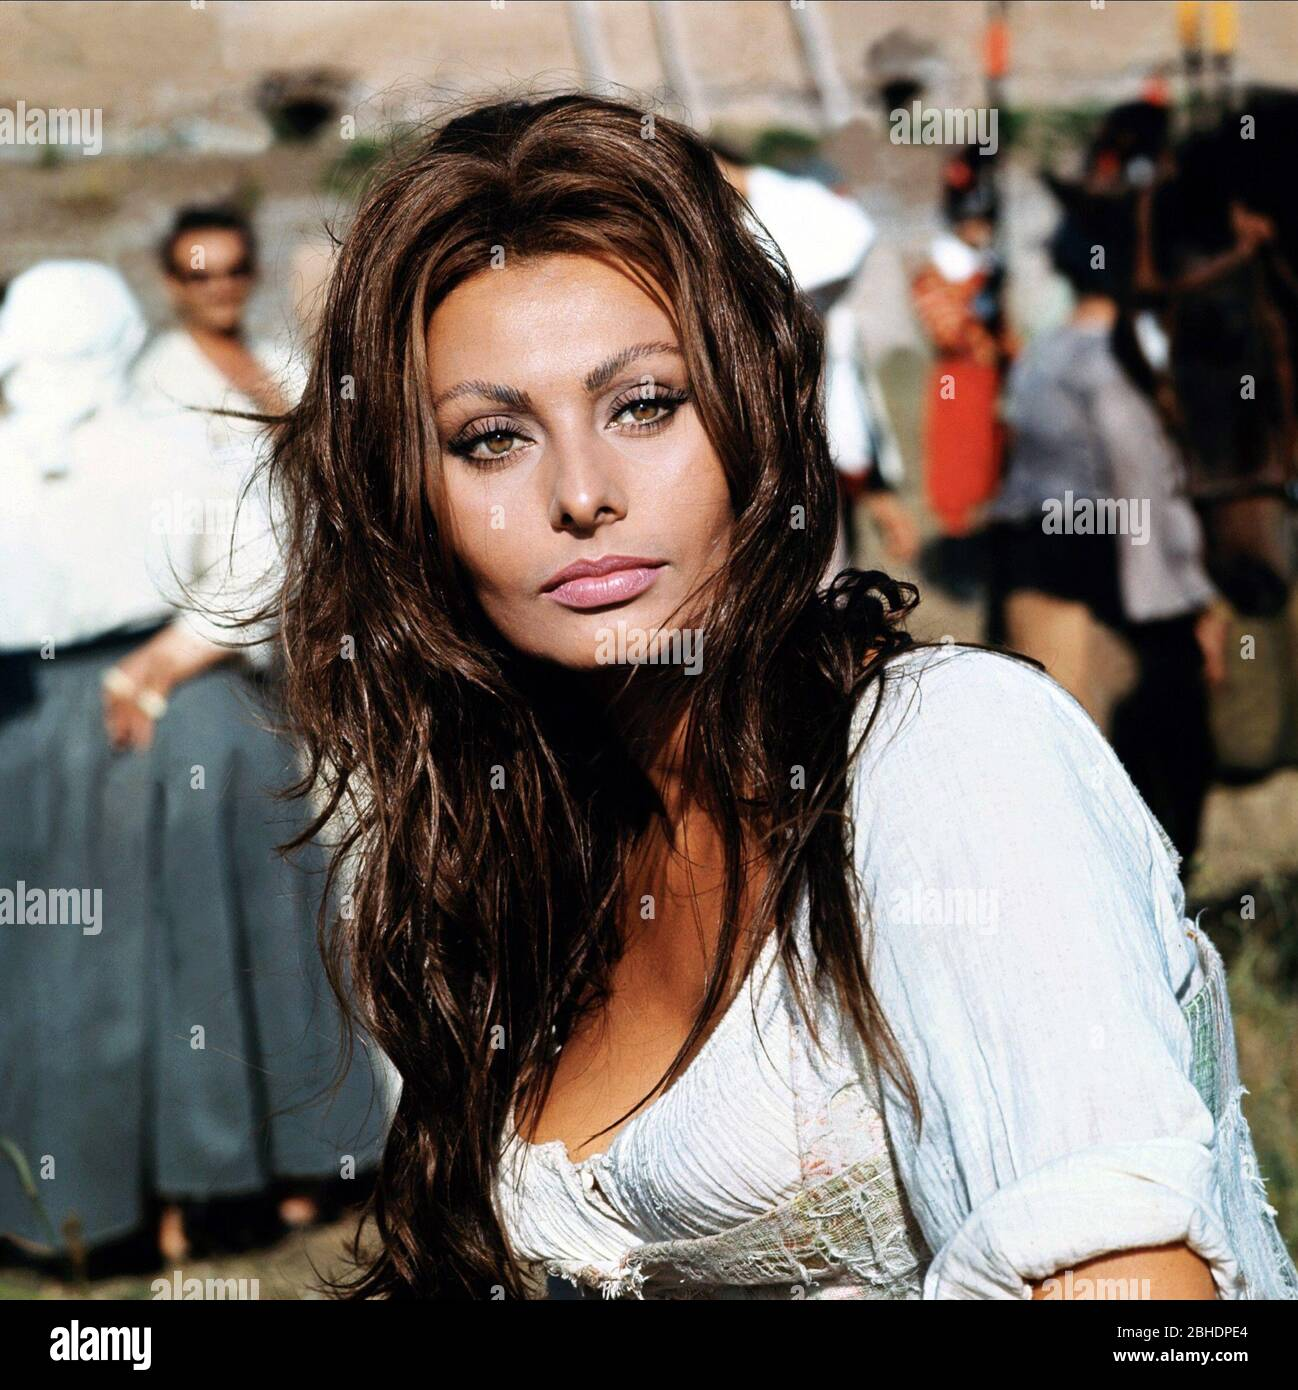 Sophia Loren High Resolution Stock Photography And Images Alamy